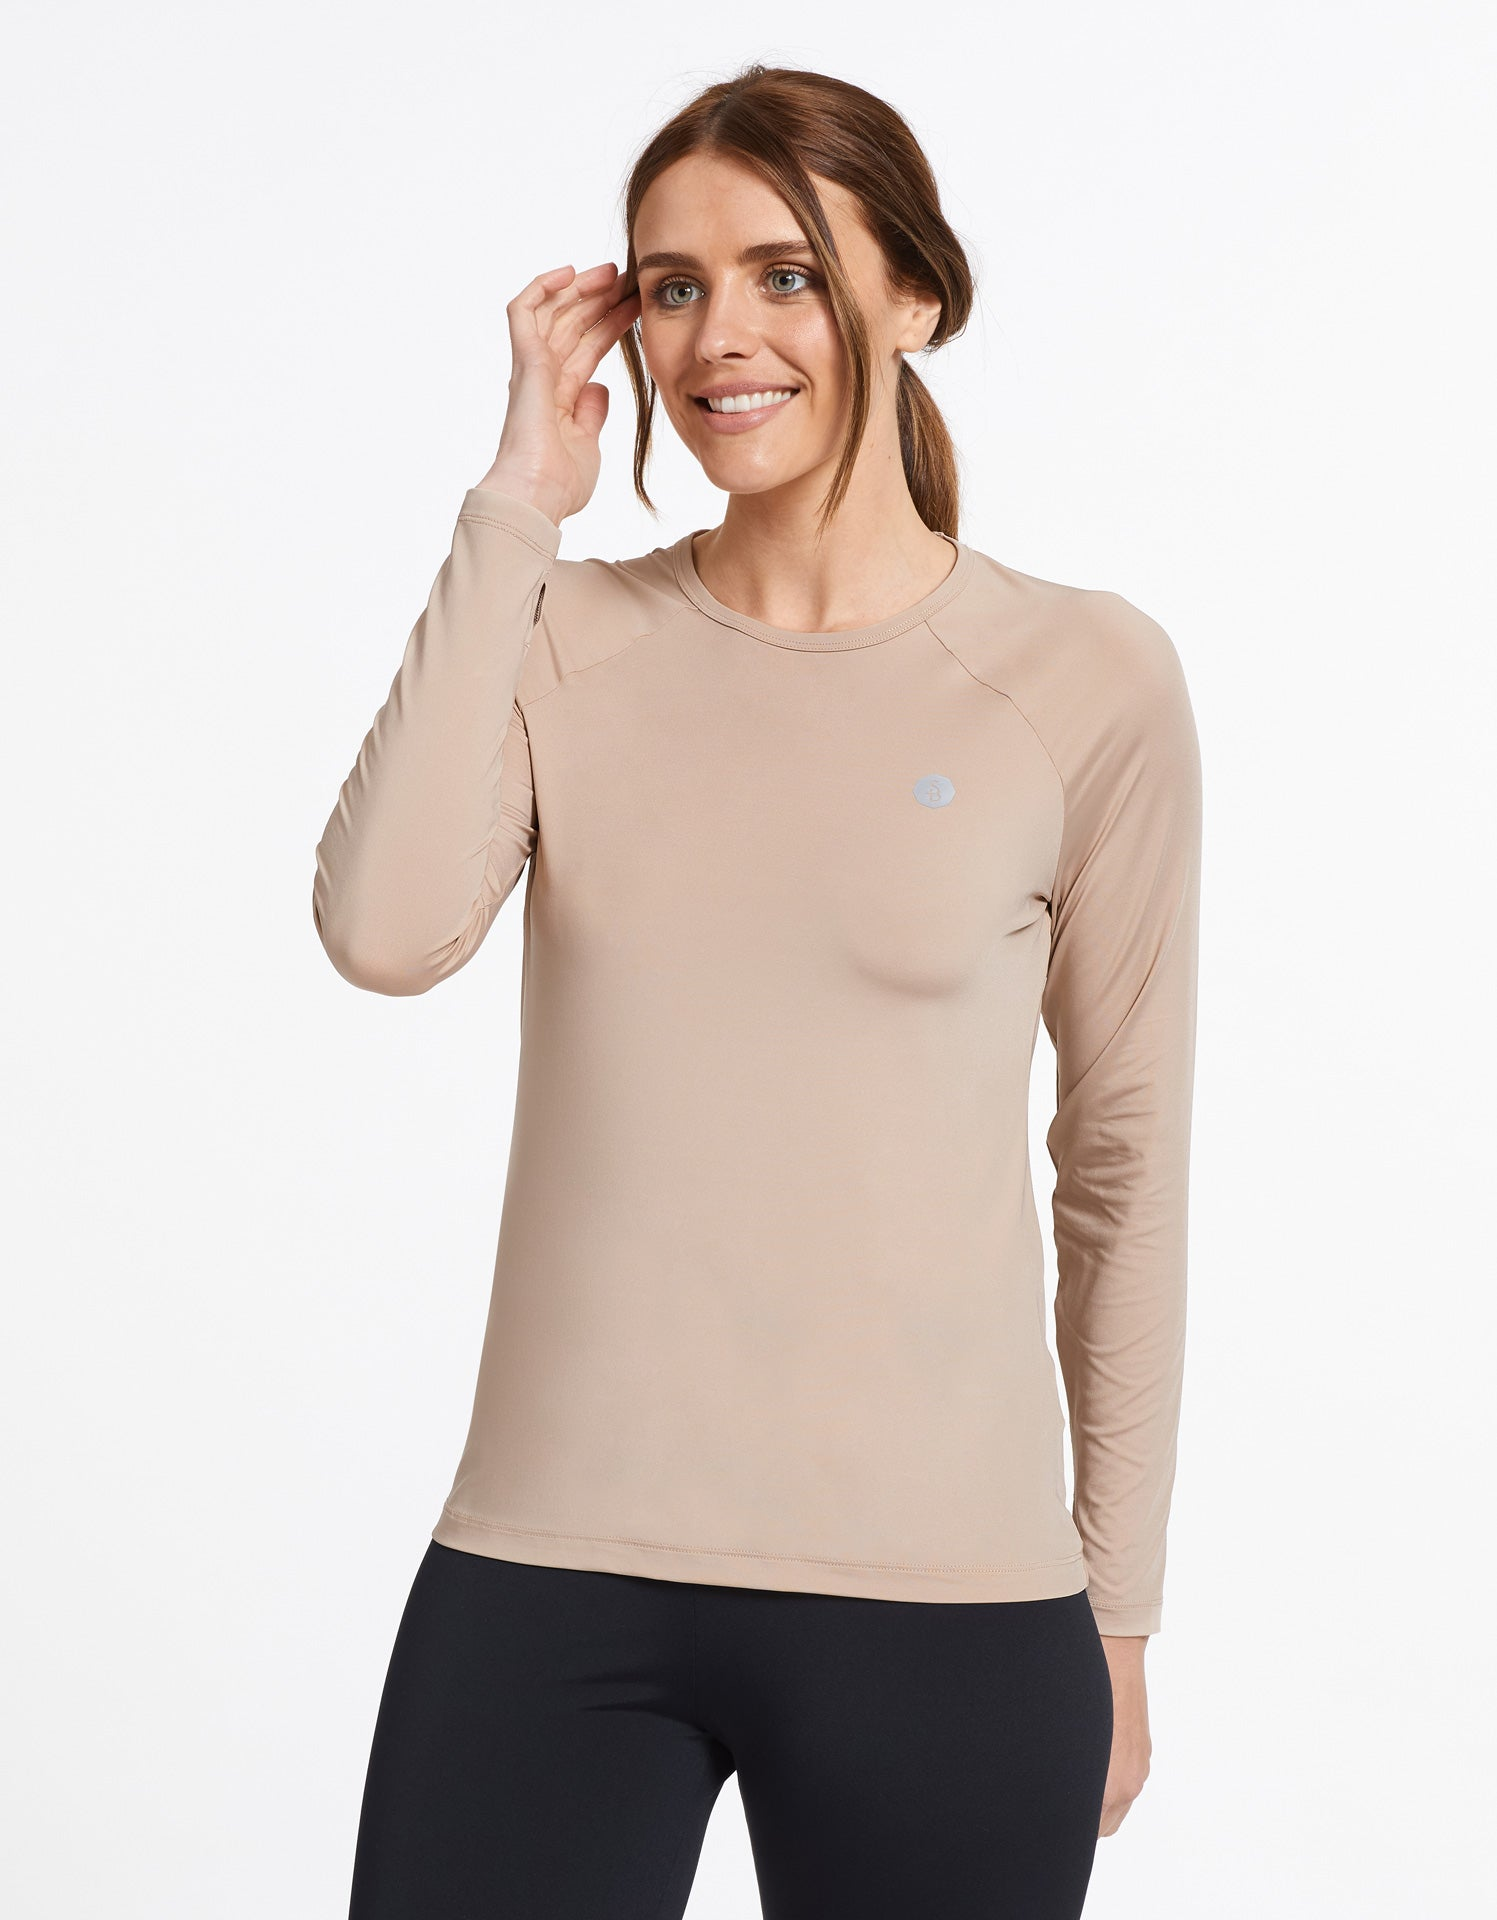 Solbari Sun Protection Women's UPF50+ Base Layer Top in Beige